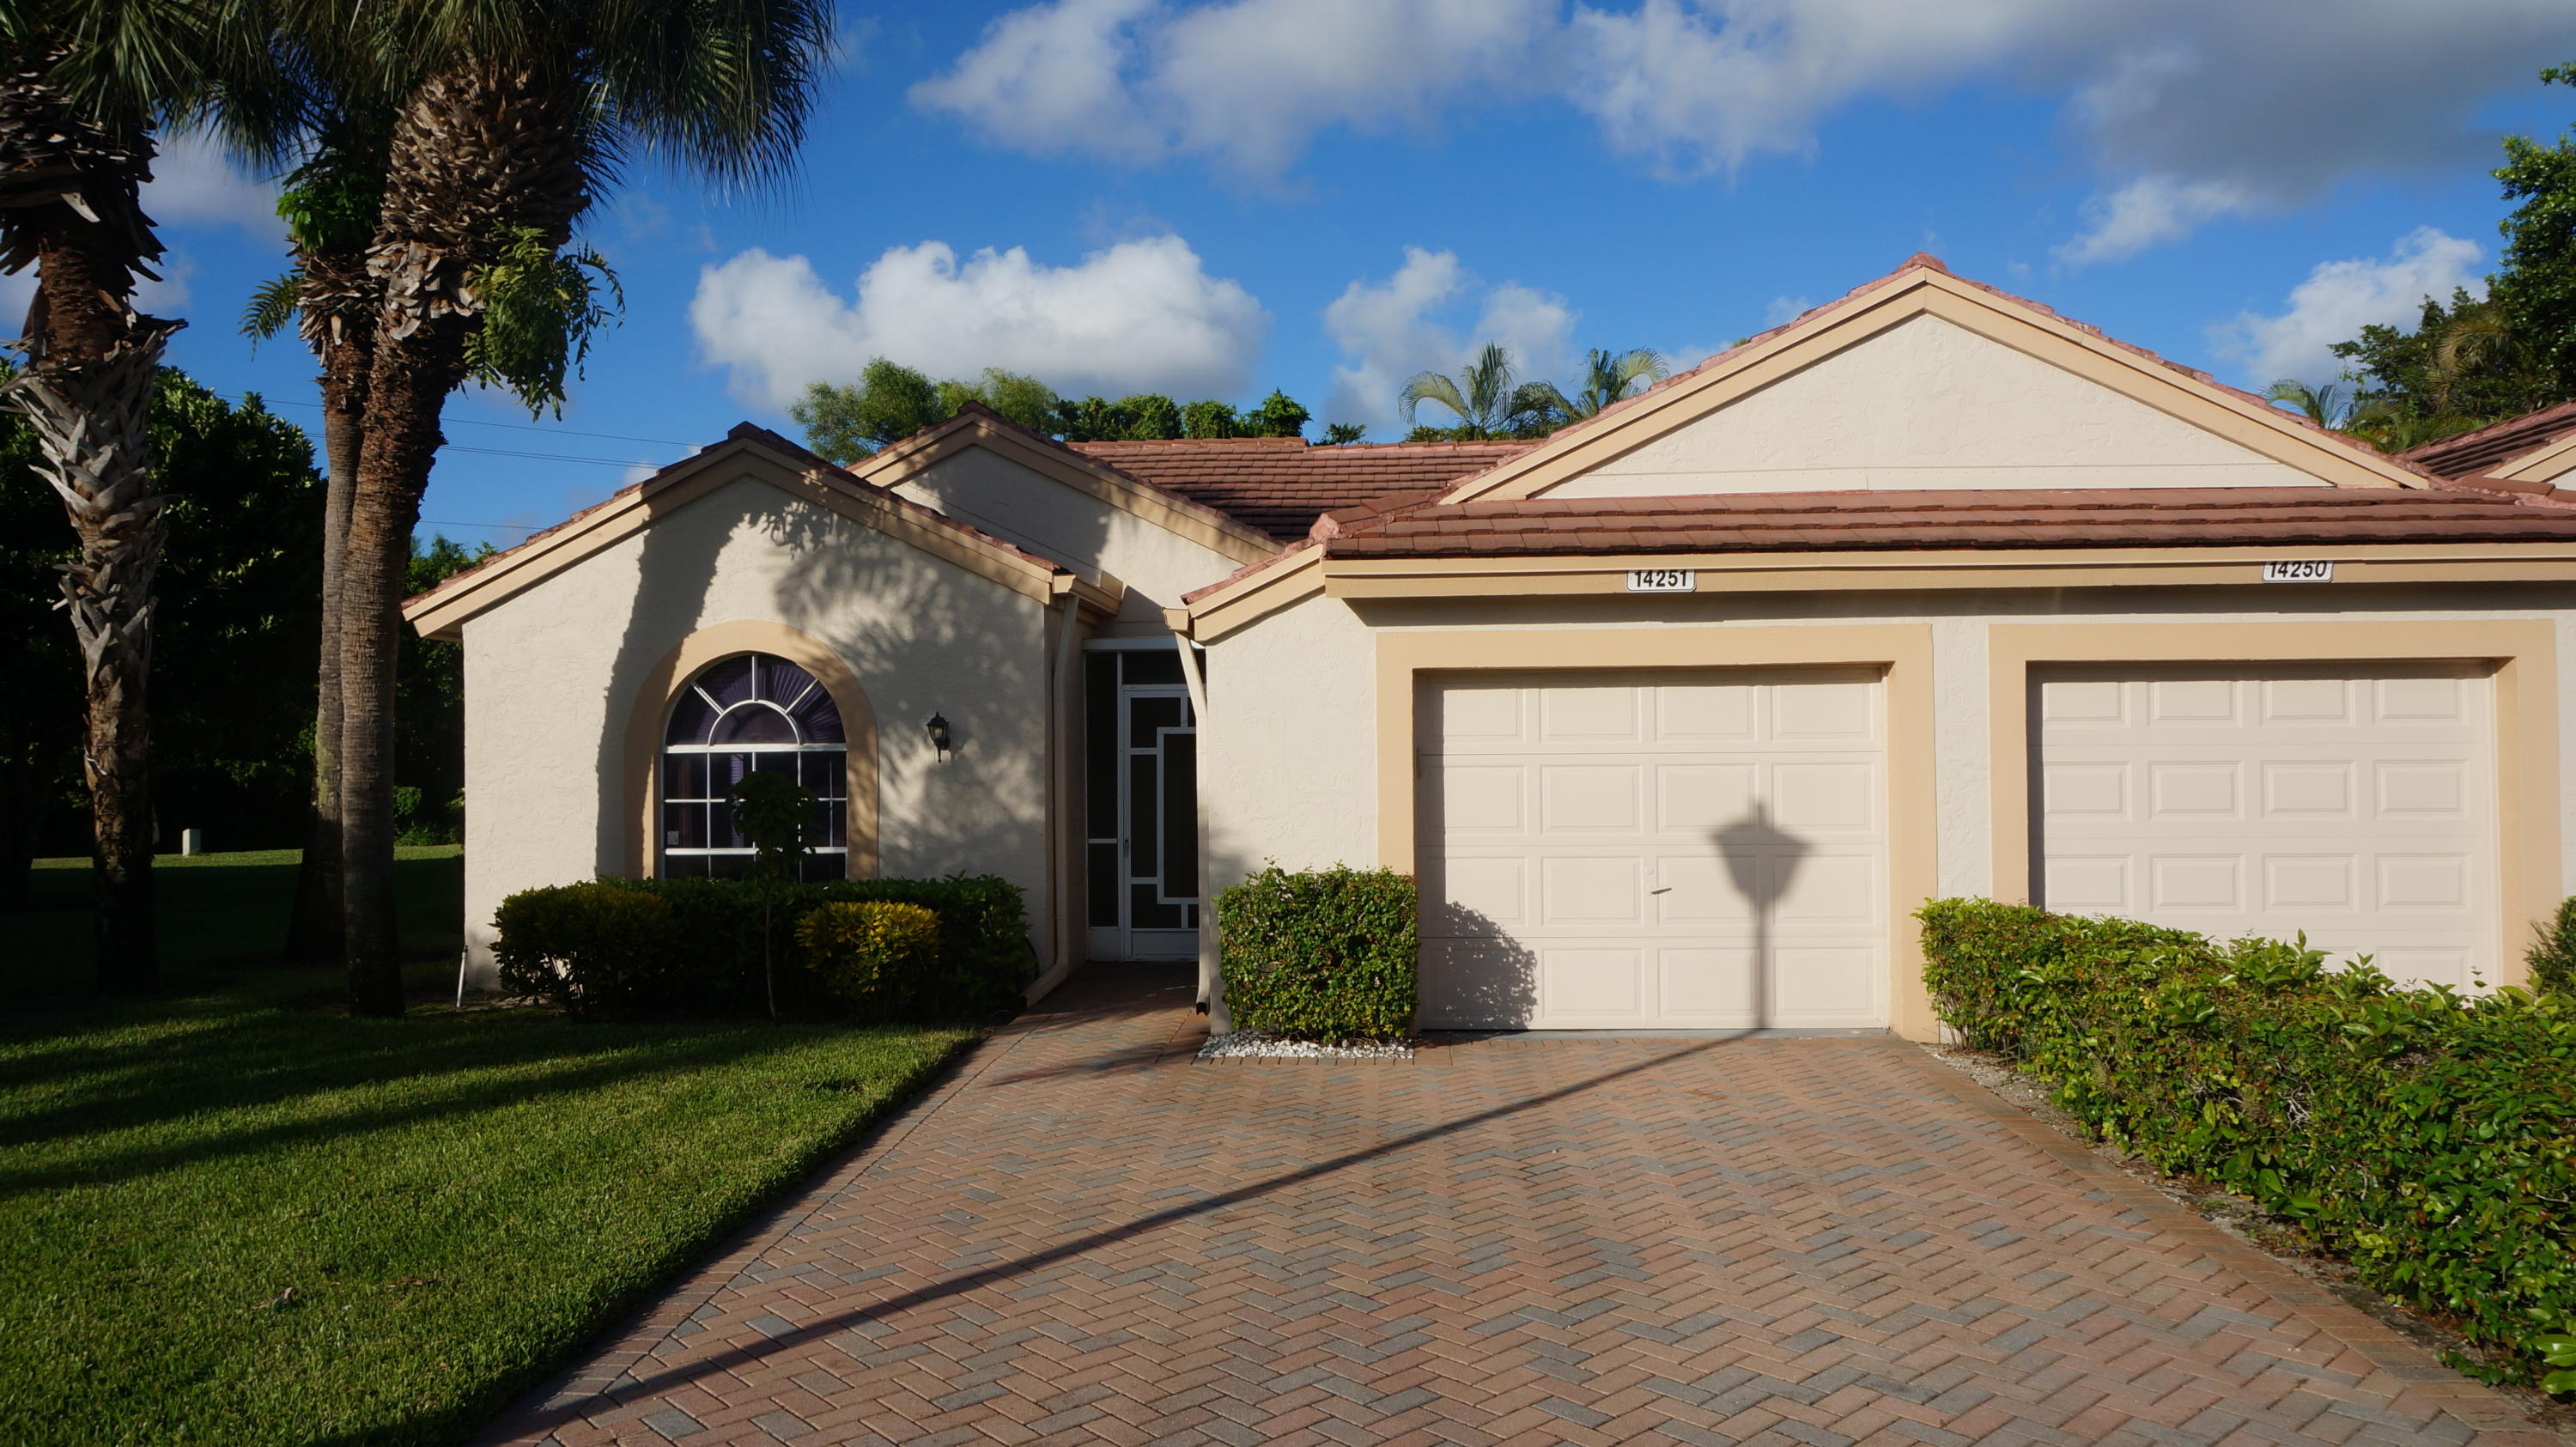 Home for sale in Emerald Pointe Delray Beach Florida